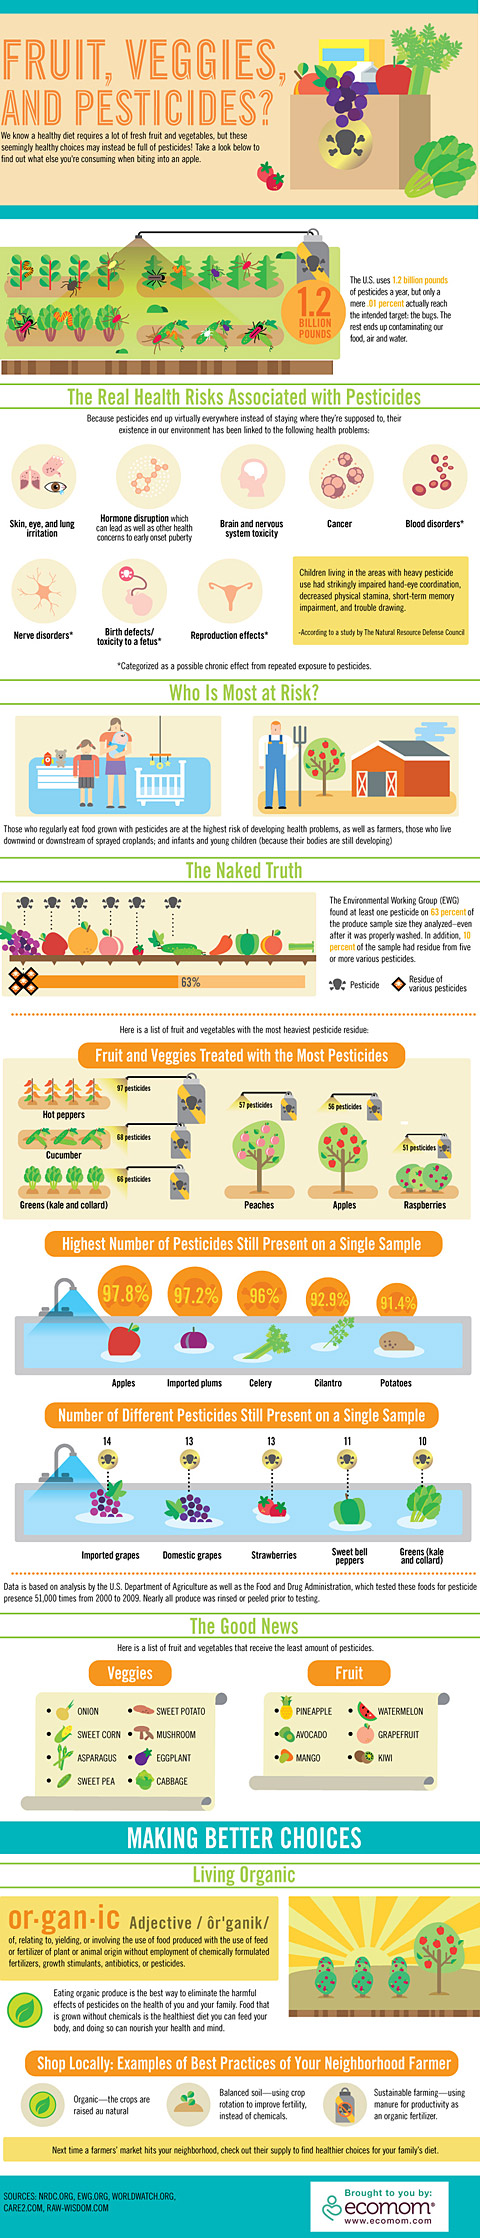 Fruits, Veggies and Pesticides Infographic